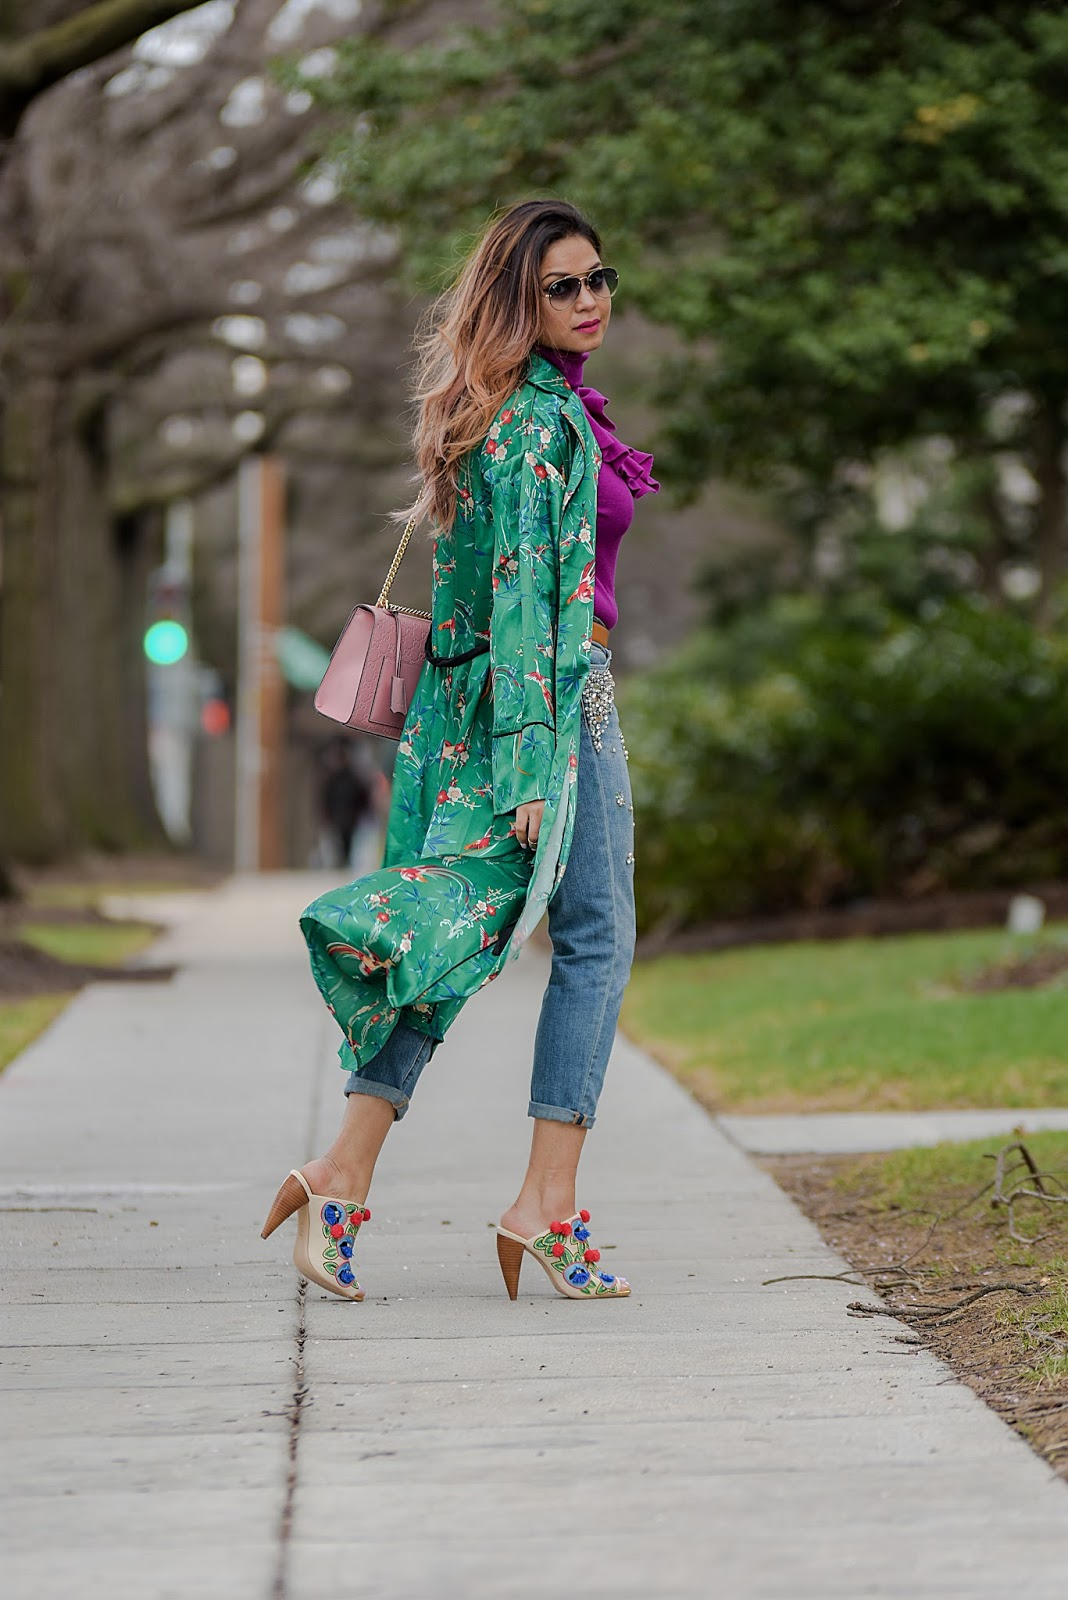 HOW TO wear a kimono without looking like you rolled out of bed, green kimono with embellished boyfriend jeans, dc blogger, style, fashion, street style, ruffled sweater, pom pom heels, gucci p;ink marmont bag, ray ban , myriad musings